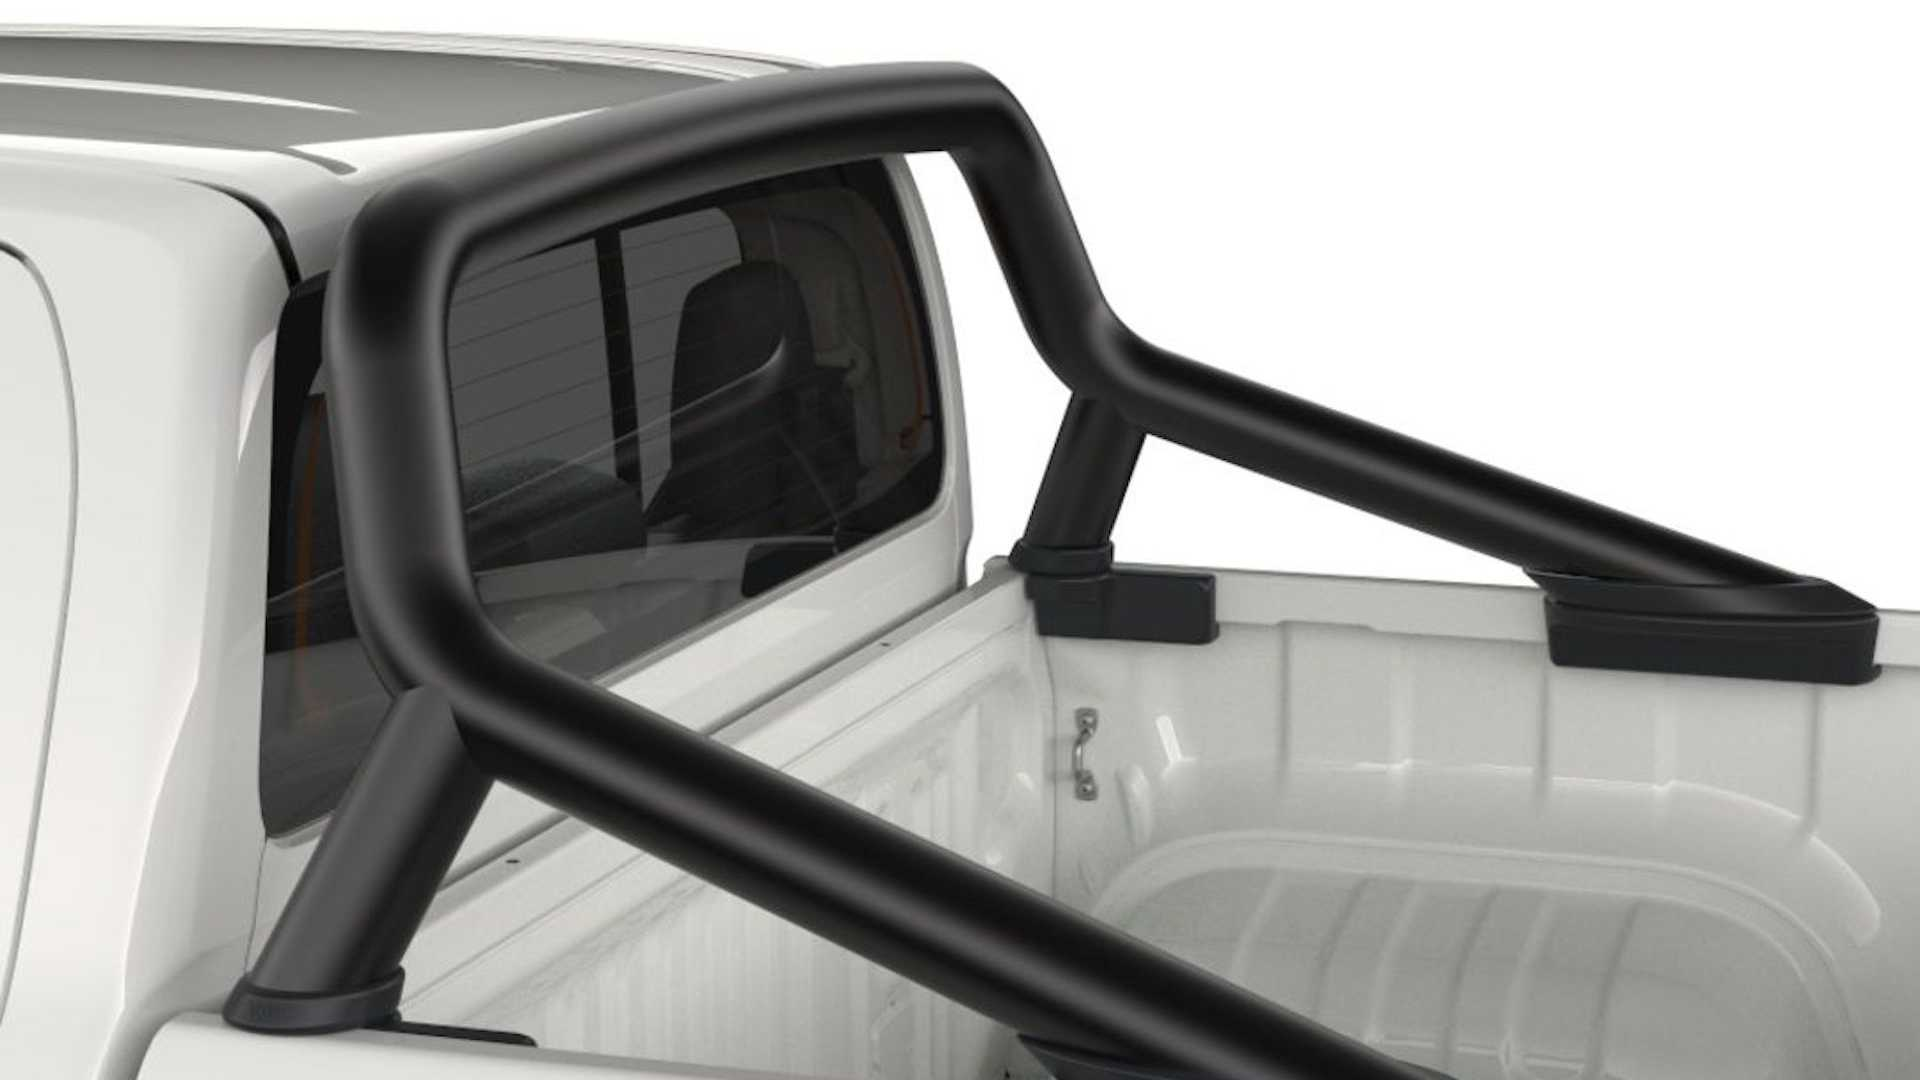 Toyota-Hilux-accessories-5